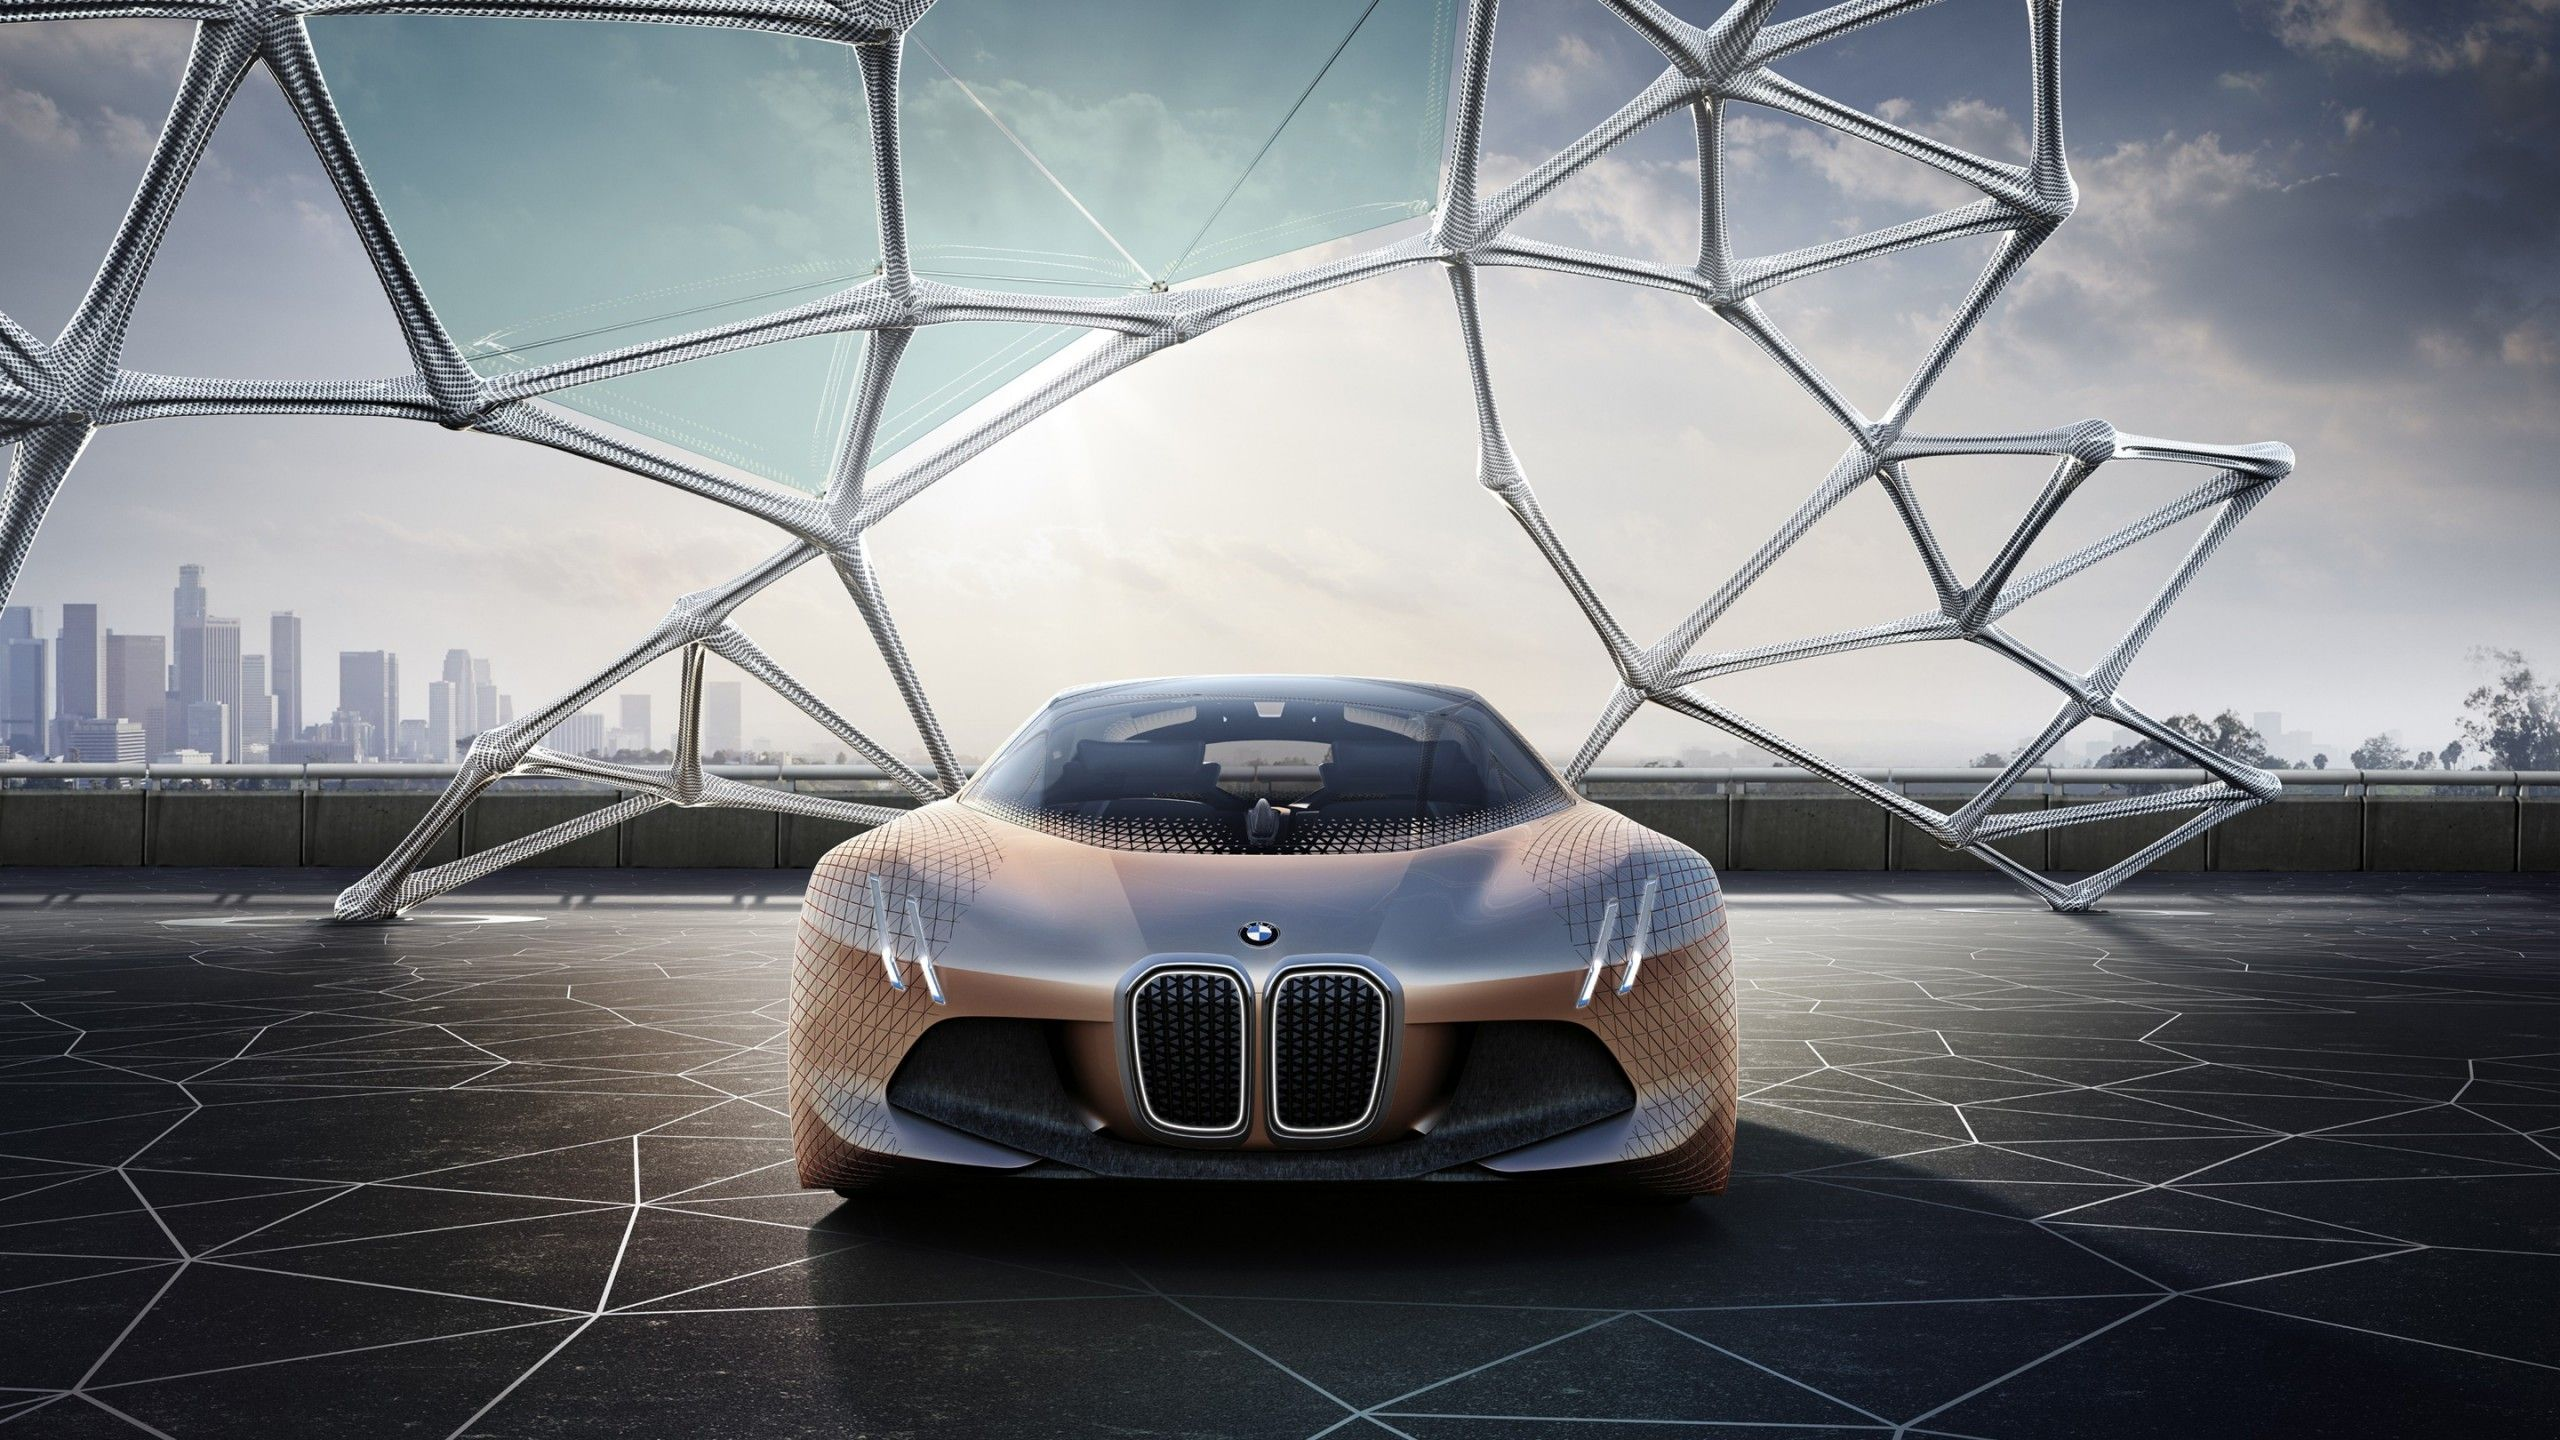 Bmw Vision Wallpapers Top Free Bmw Vision Backgrounds Wallpaperaccess